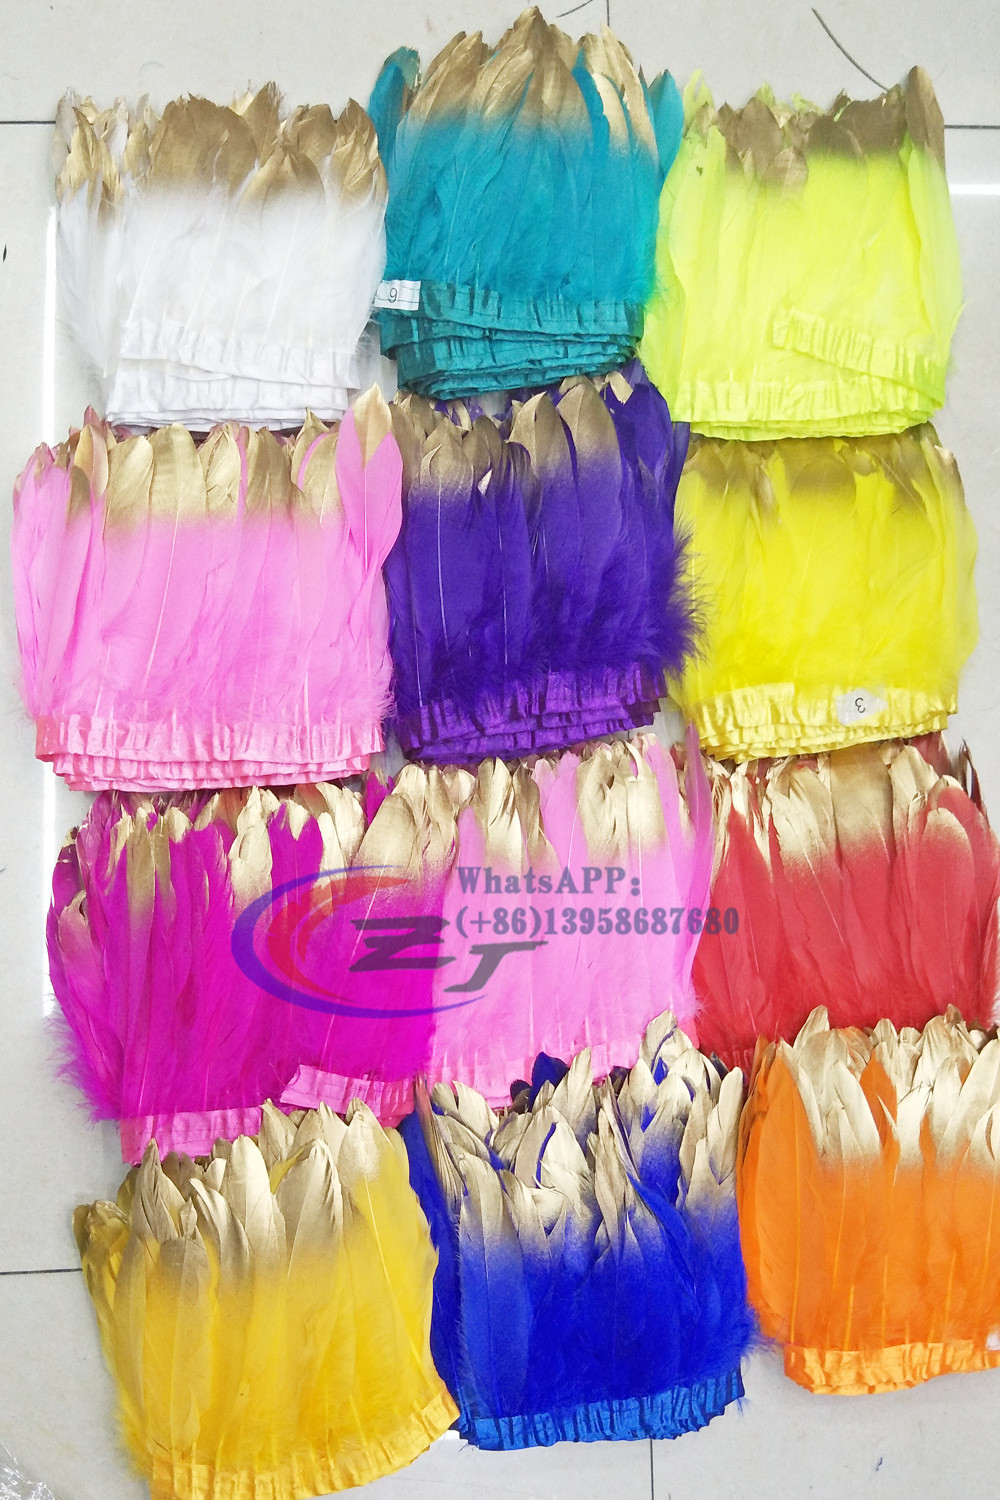 2017 New Goose feather trims 2yards/lot Gold Tips Dyed geese feather ribbons /15-18cm Duck feather fringes Free shipping